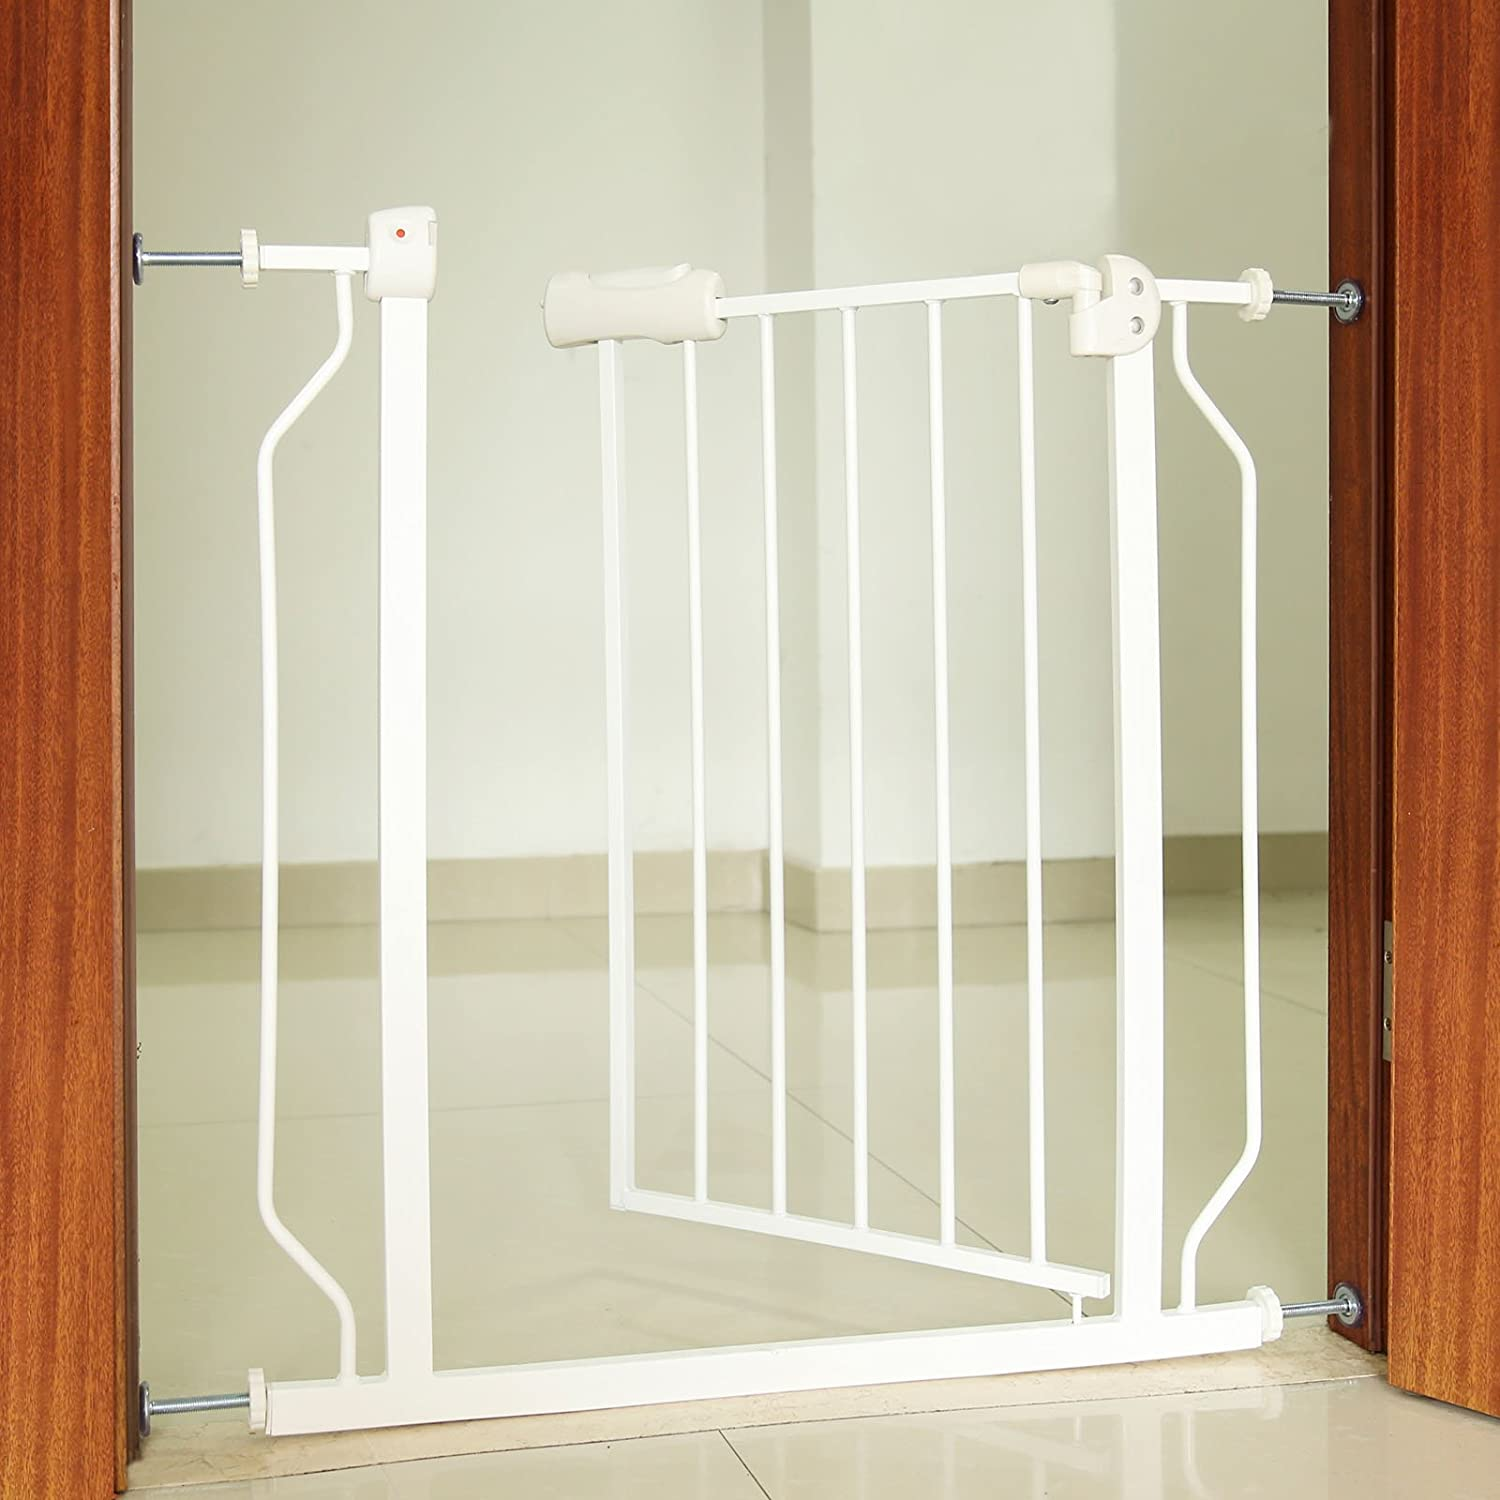 Door Protection Grid B 74cm x H 76cm extensible B83cm stairs